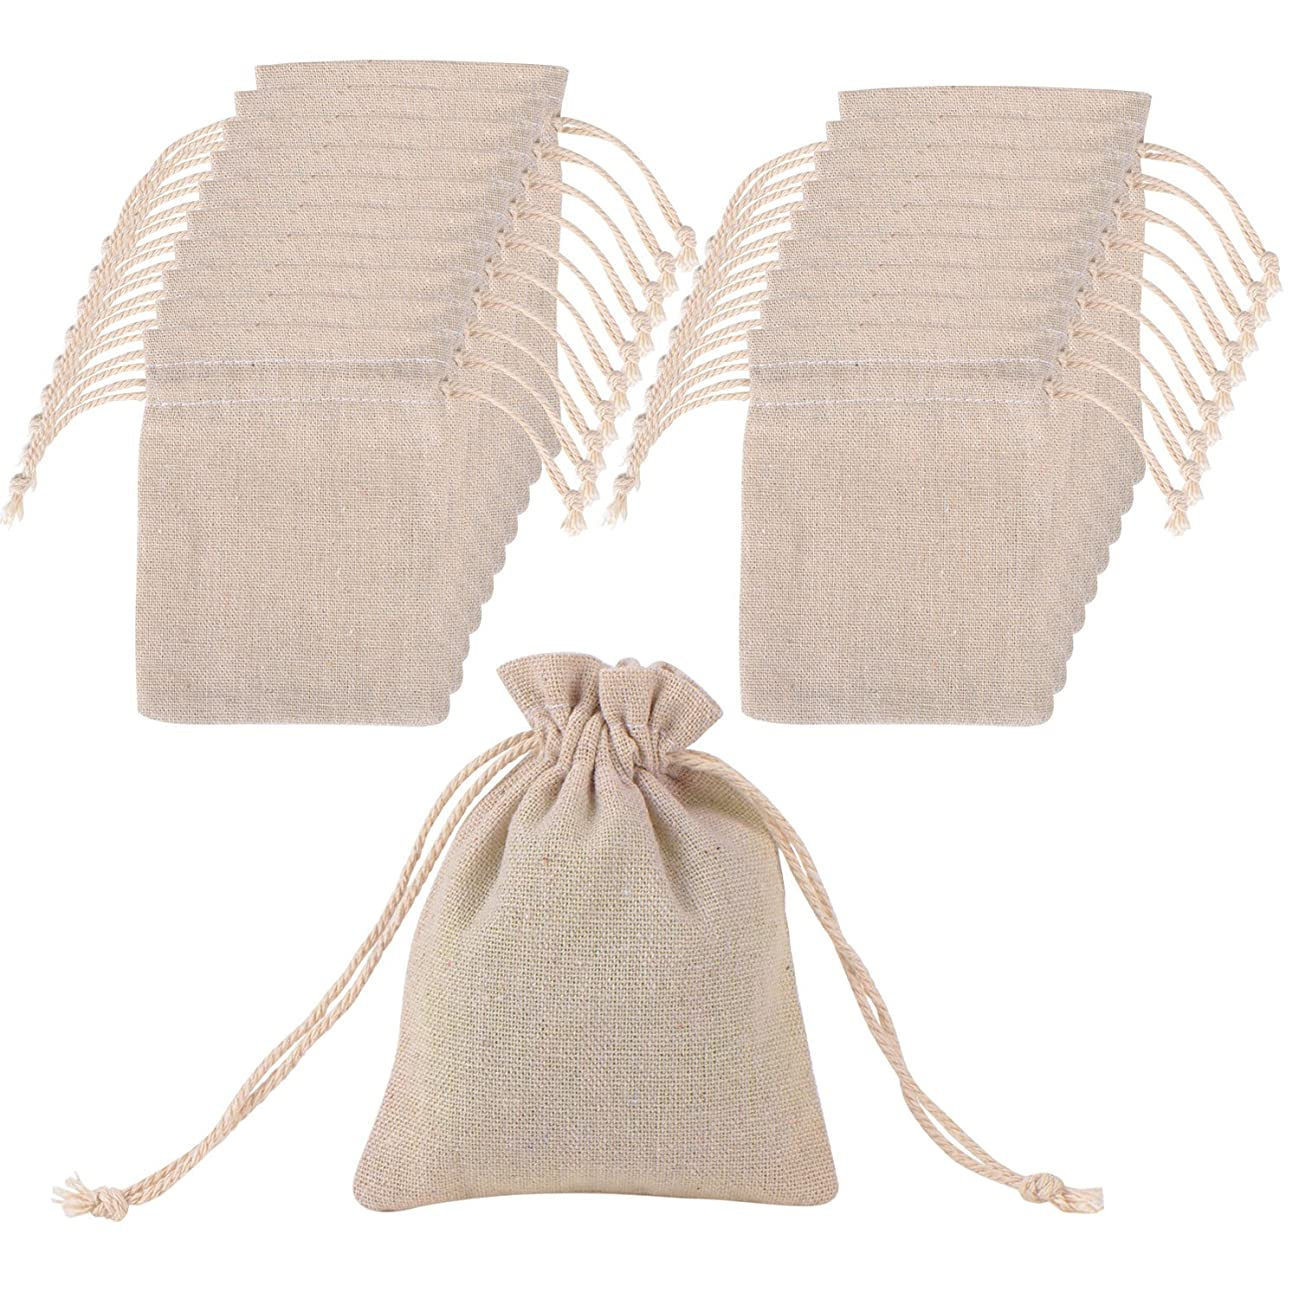 Mudder 20 Pack Cotton Muslin Bags Drawstring Muslin Bag for Wedding Party Favor and DIY Craft, 4.7 by 3.5 Inch